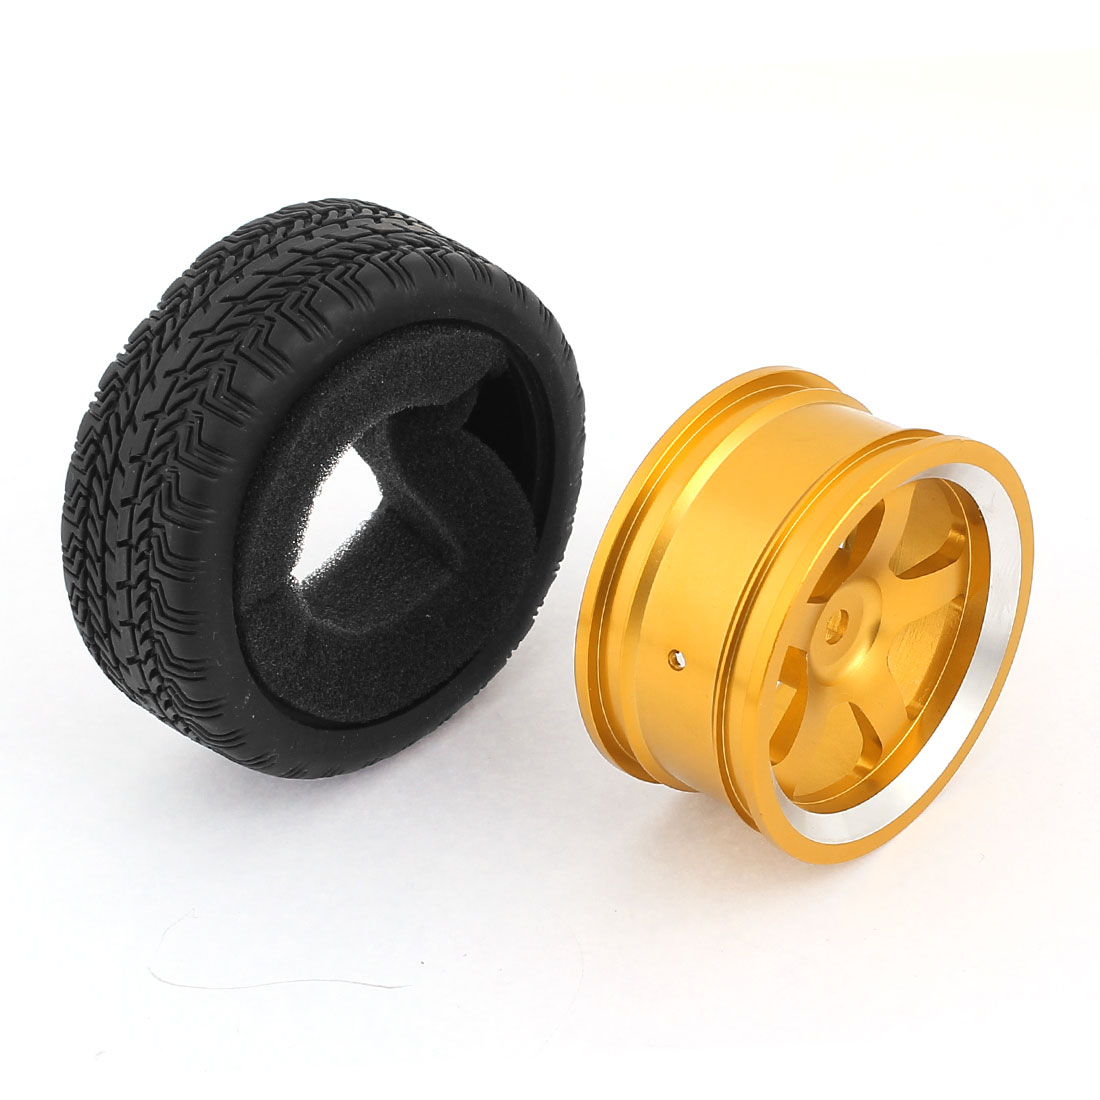 Aluminium Alloy Golden Tone Wheel Rim w Rubber Tyre for Toy Racing Car